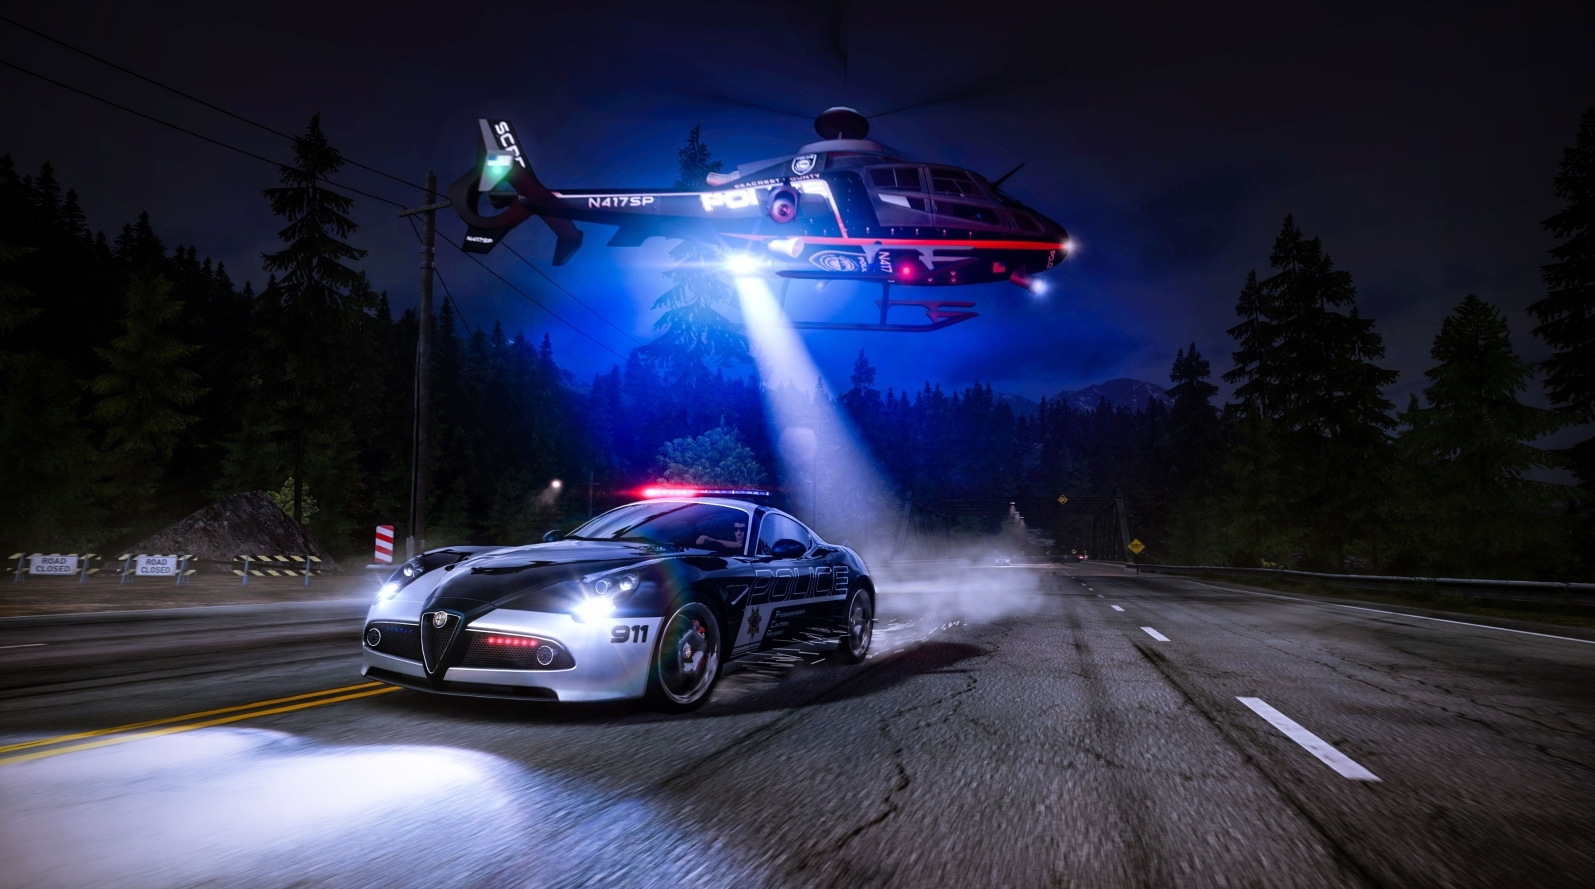 Need for Speed: Hot Pursuit Remastered officially announced, coming November 6 with cross-play - VG247